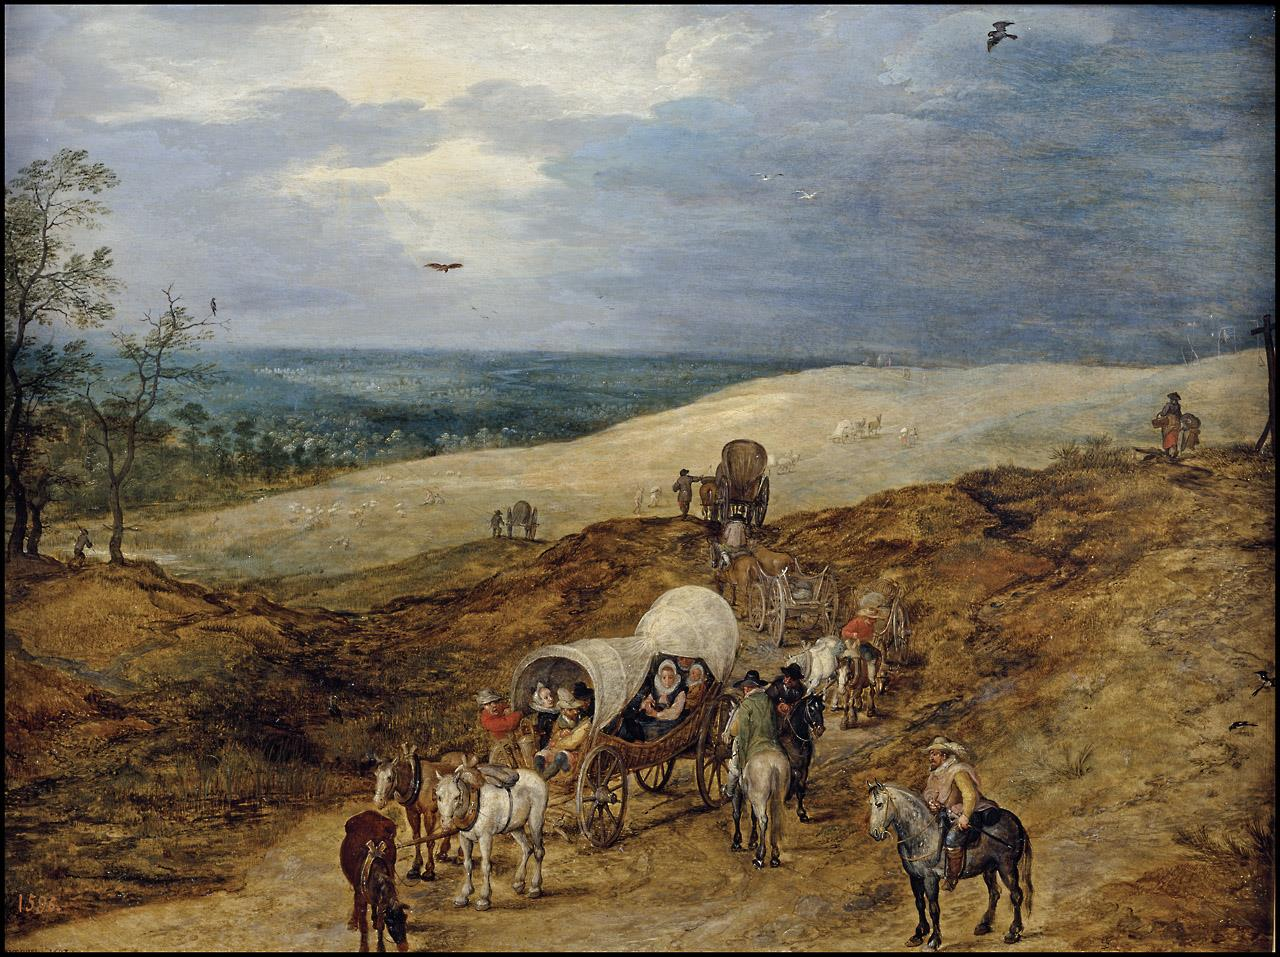 Brueghel de Velours, Jan